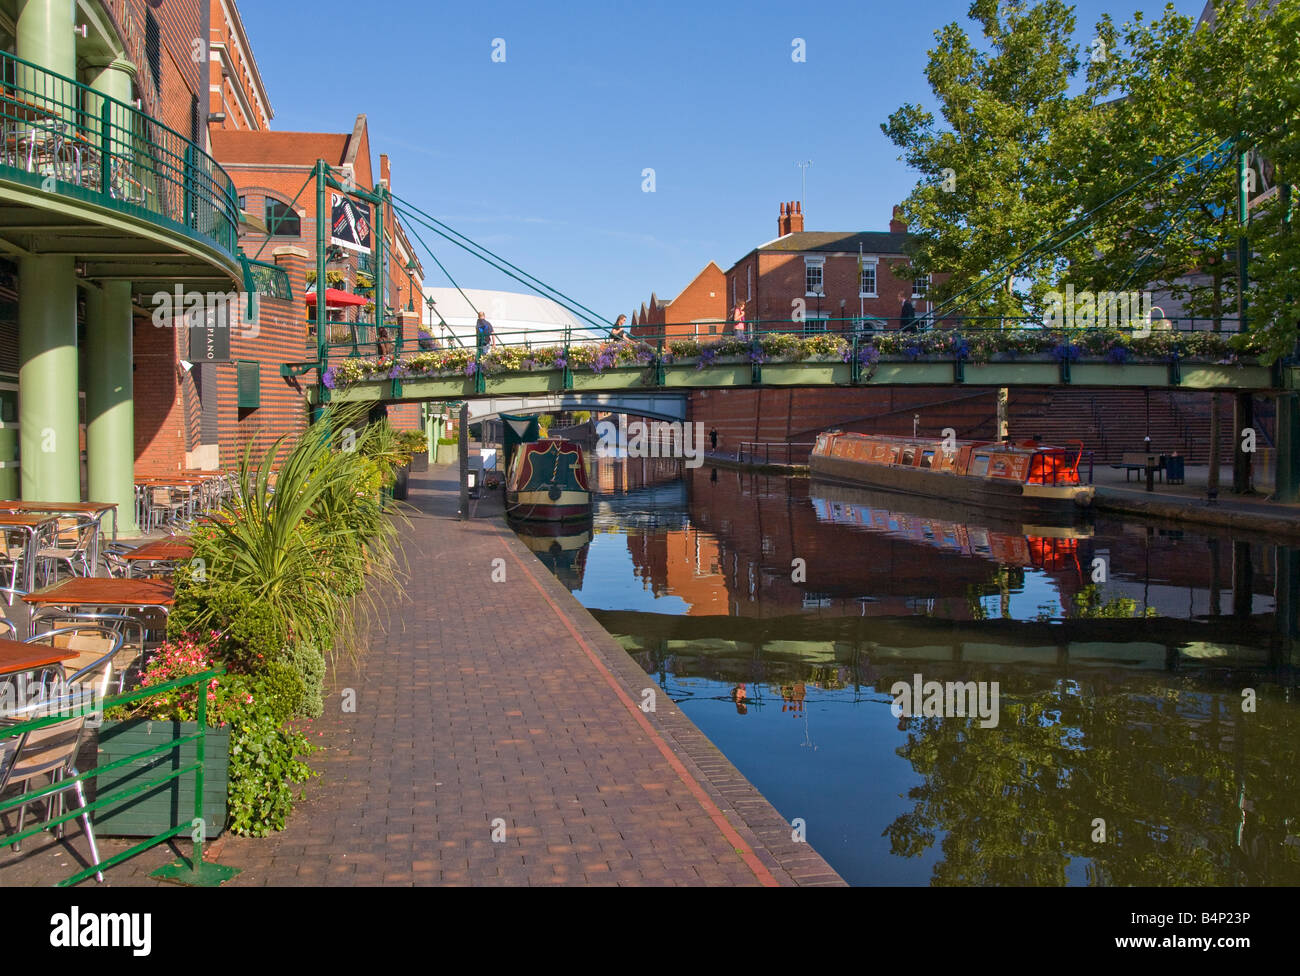 The canal in Brindley Place Birmingham UK - Stock Image